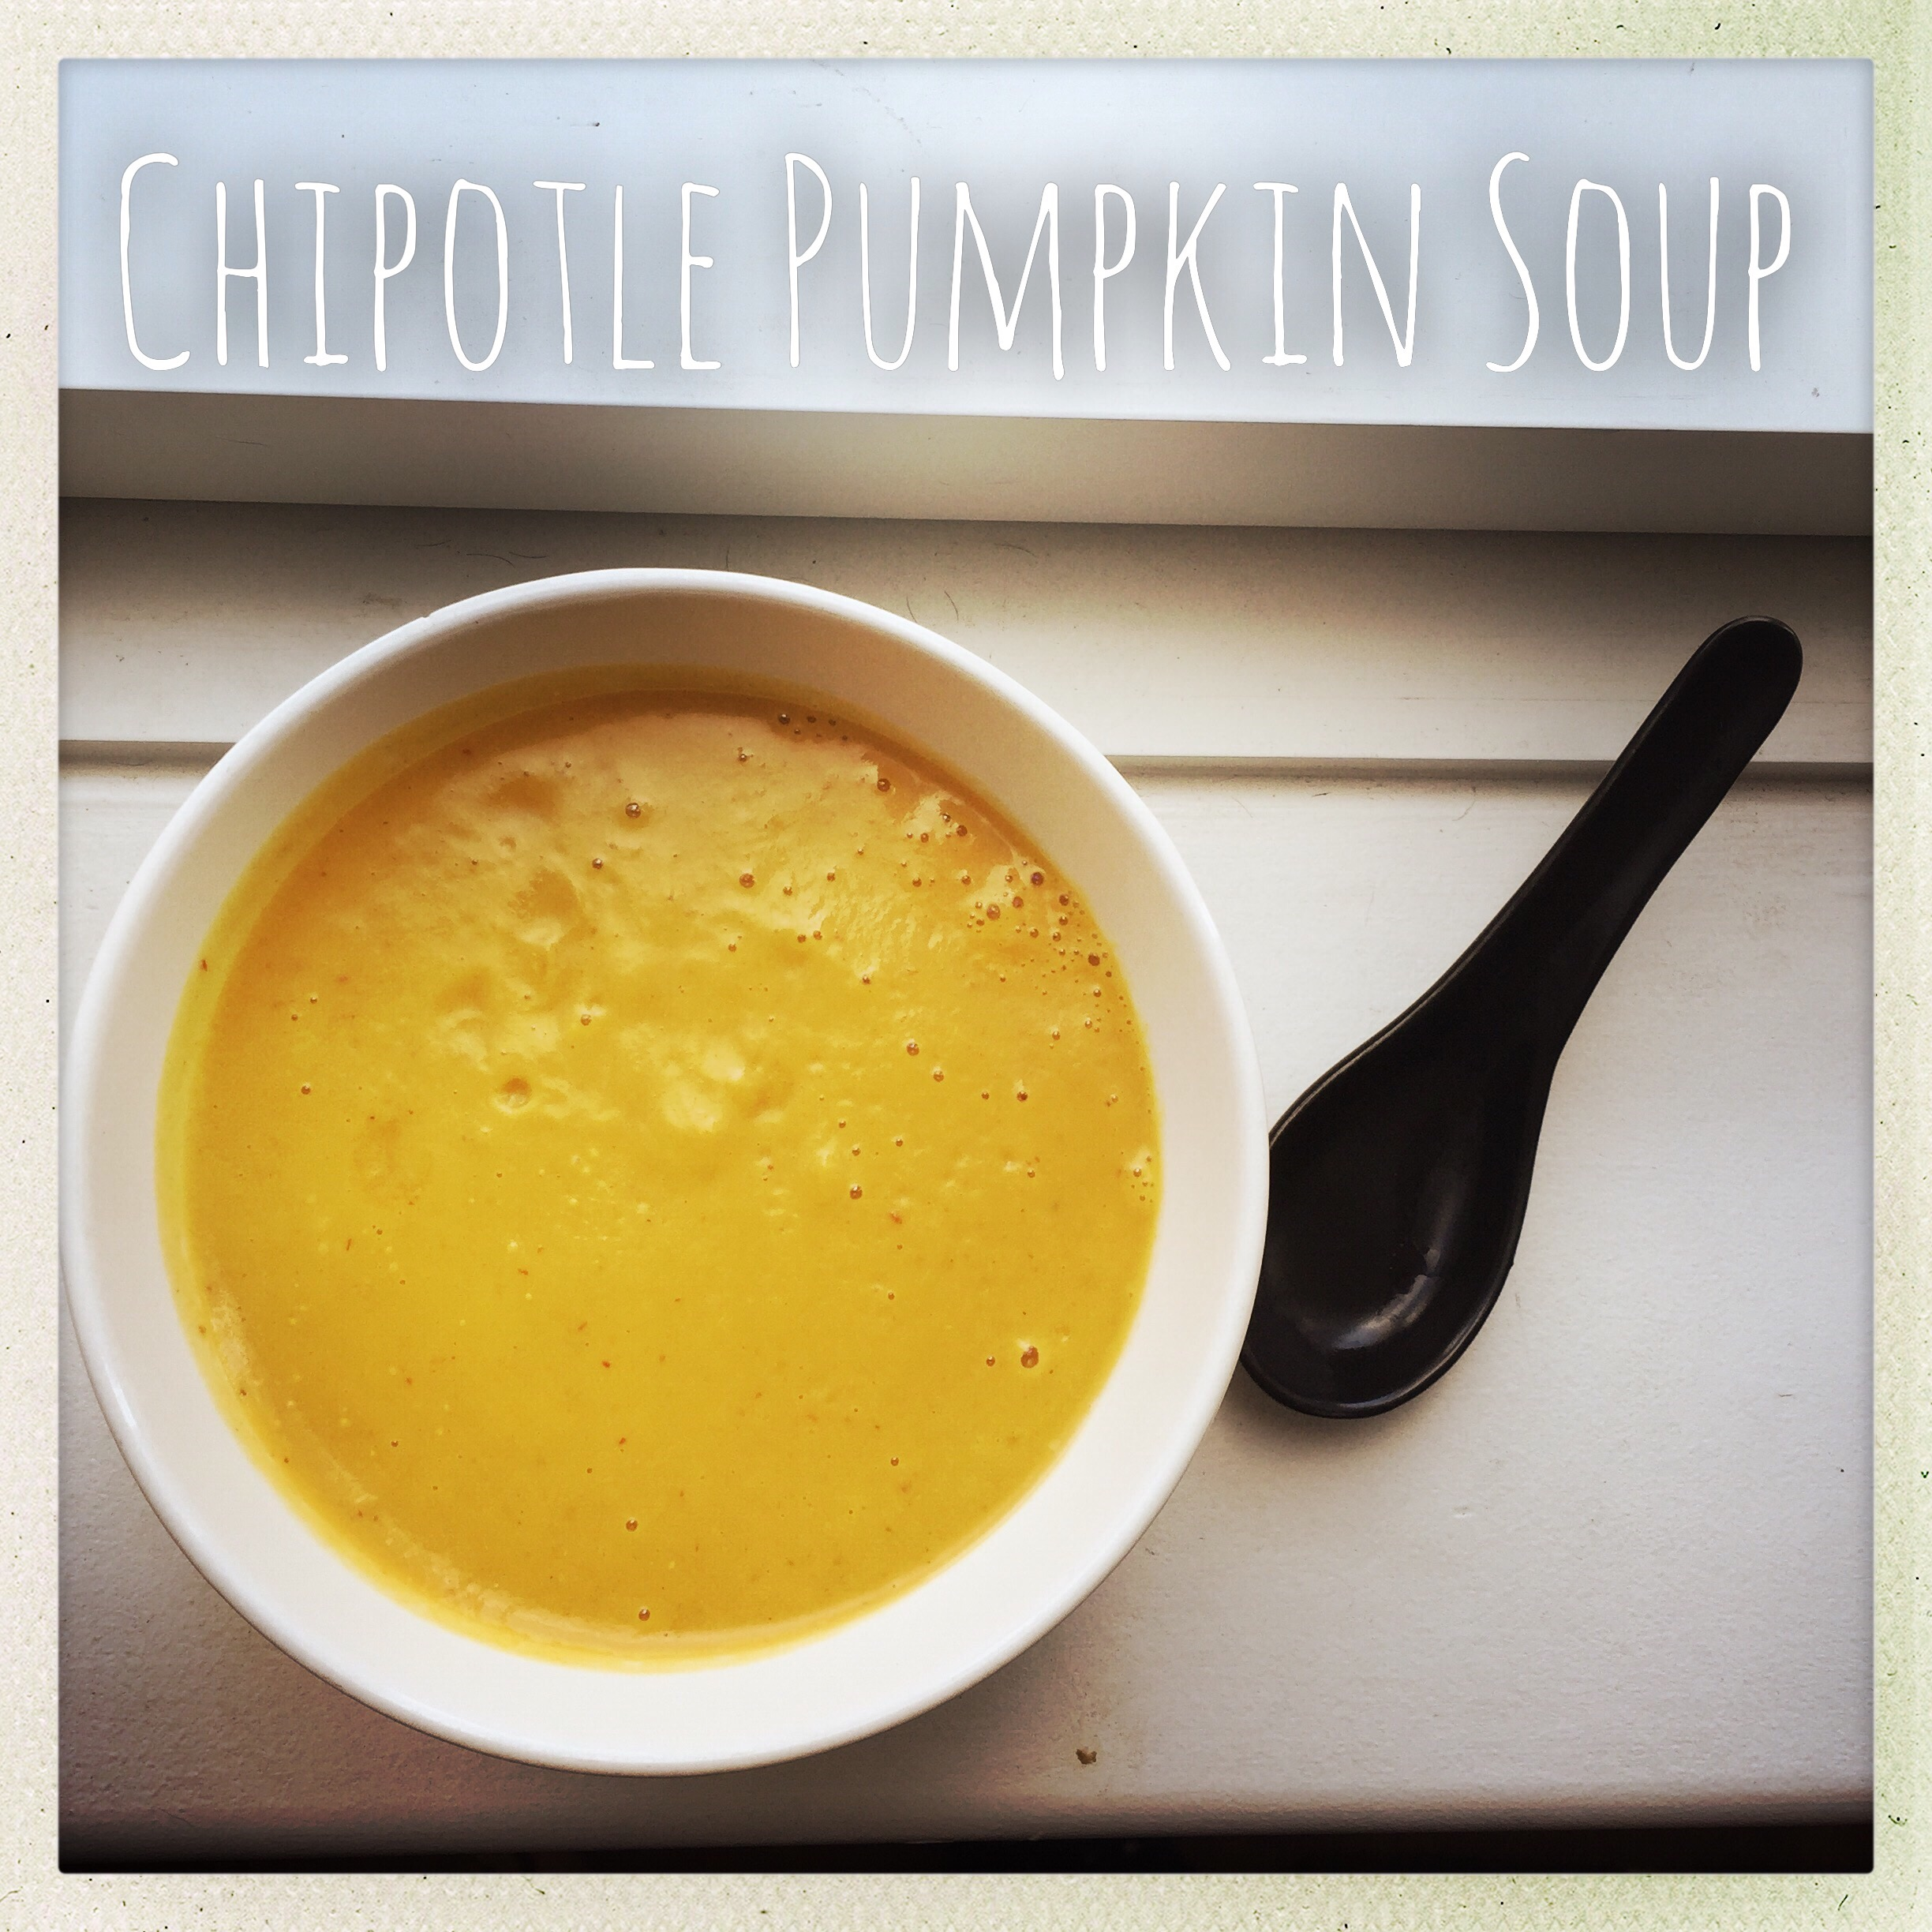 Chipotle Pumpkin Soup | Gastography